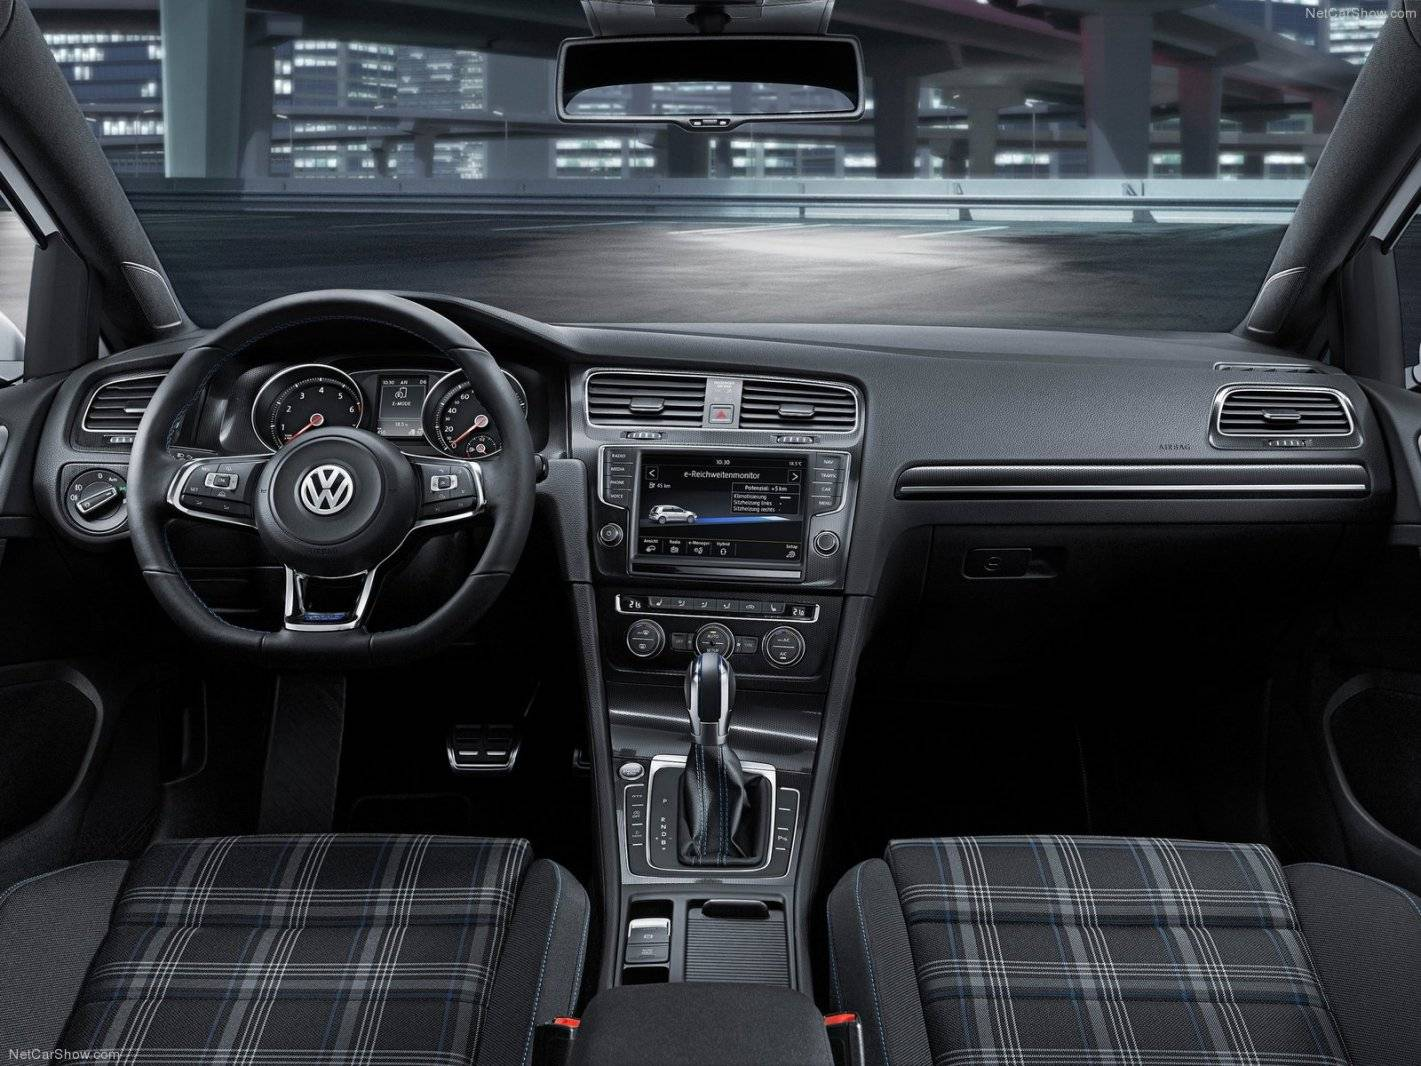 officieel volkswagen golf gte hybride en 7 bijtelling autonieuws. Black Bedroom Furniture Sets. Home Design Ideas